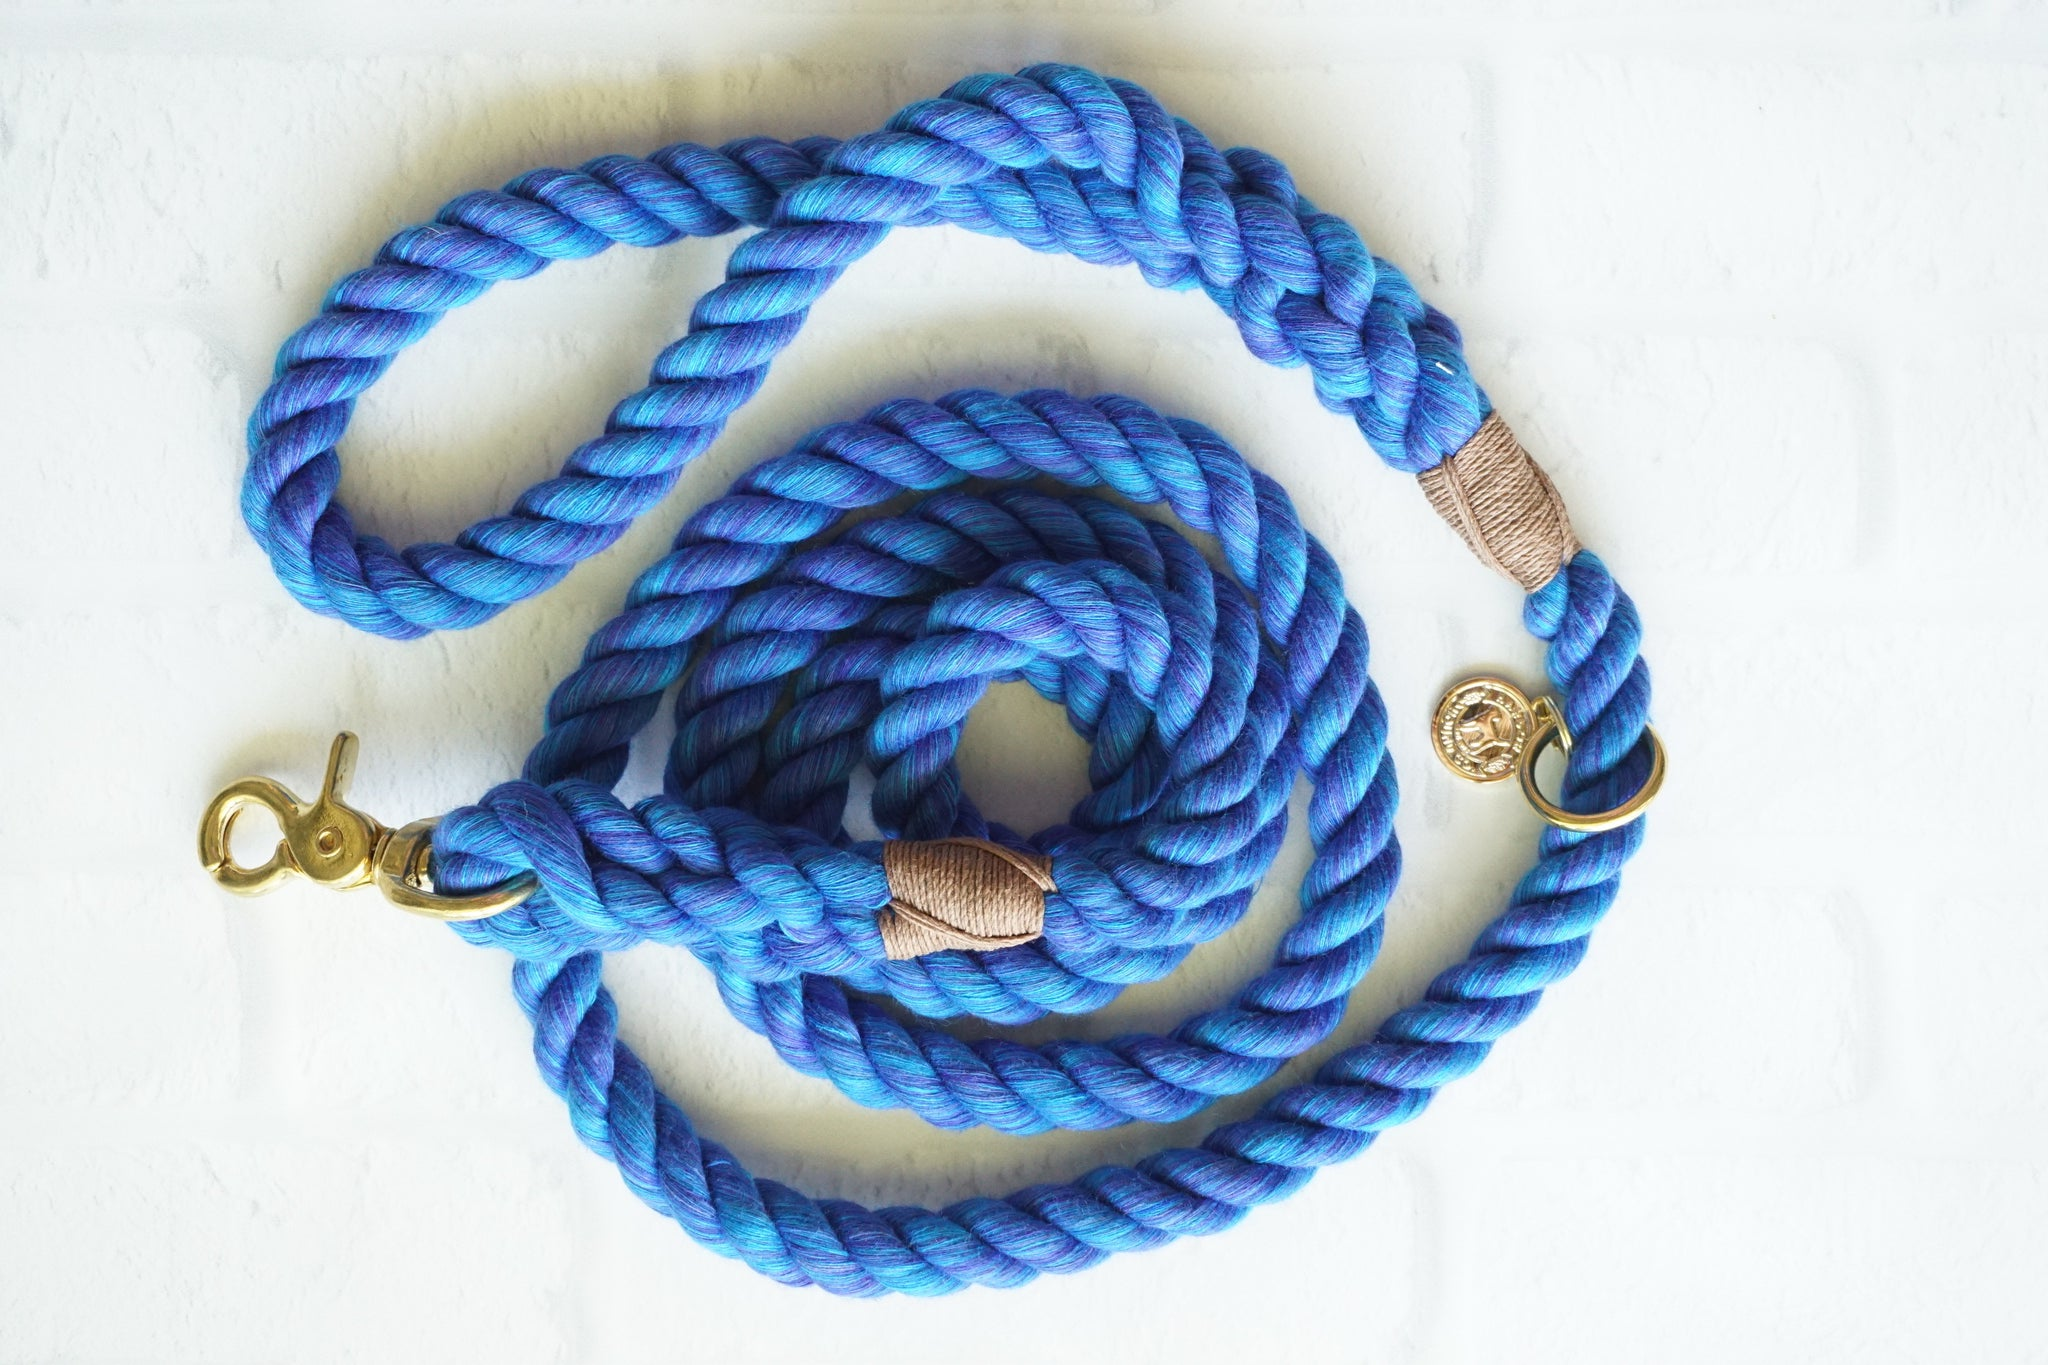 Dory Blue Cotton Rope Leash, Royal Blue Dog Leash